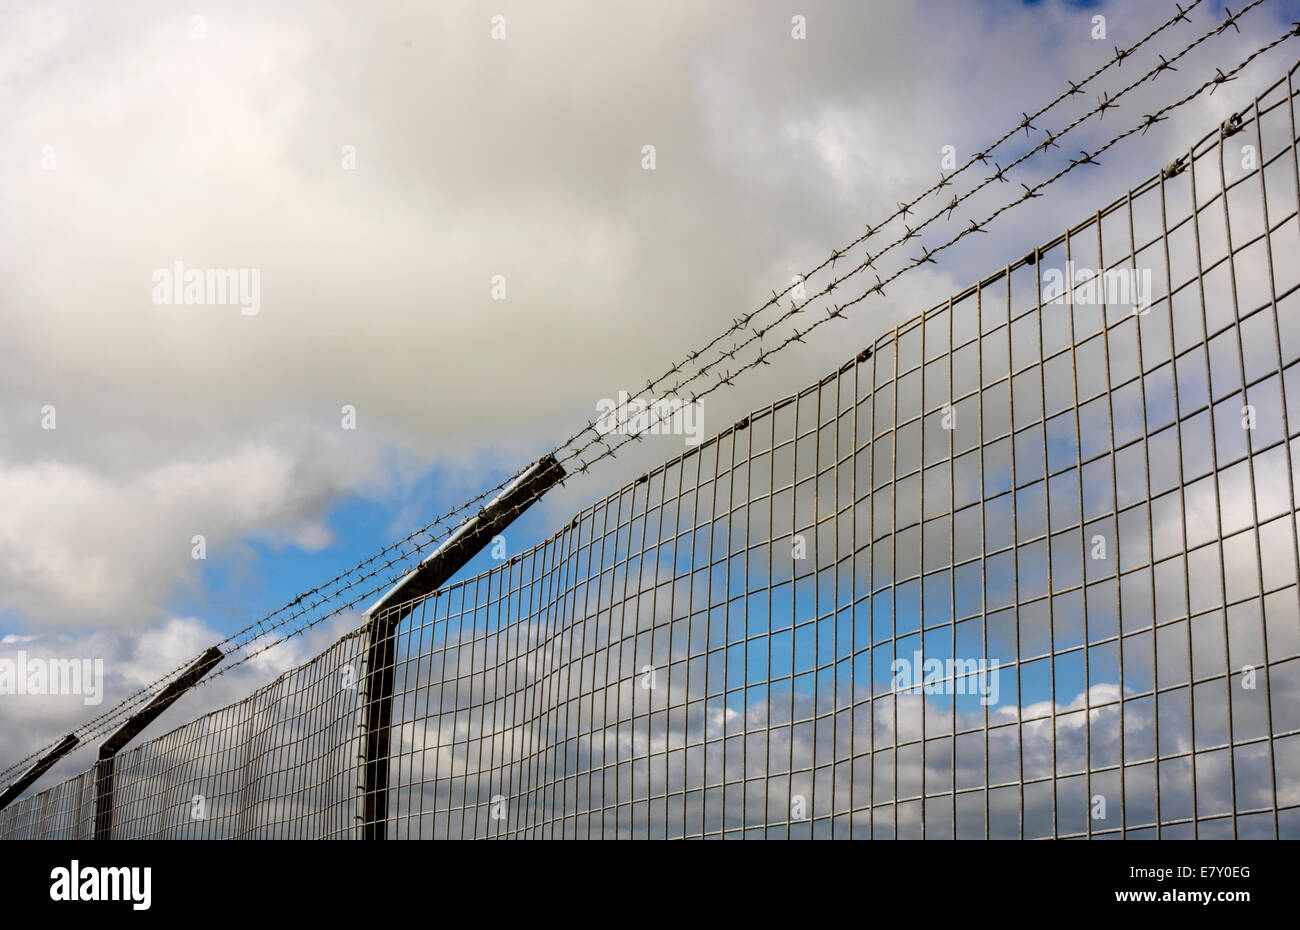 A fence around a compound to keep it secure - Stock Image